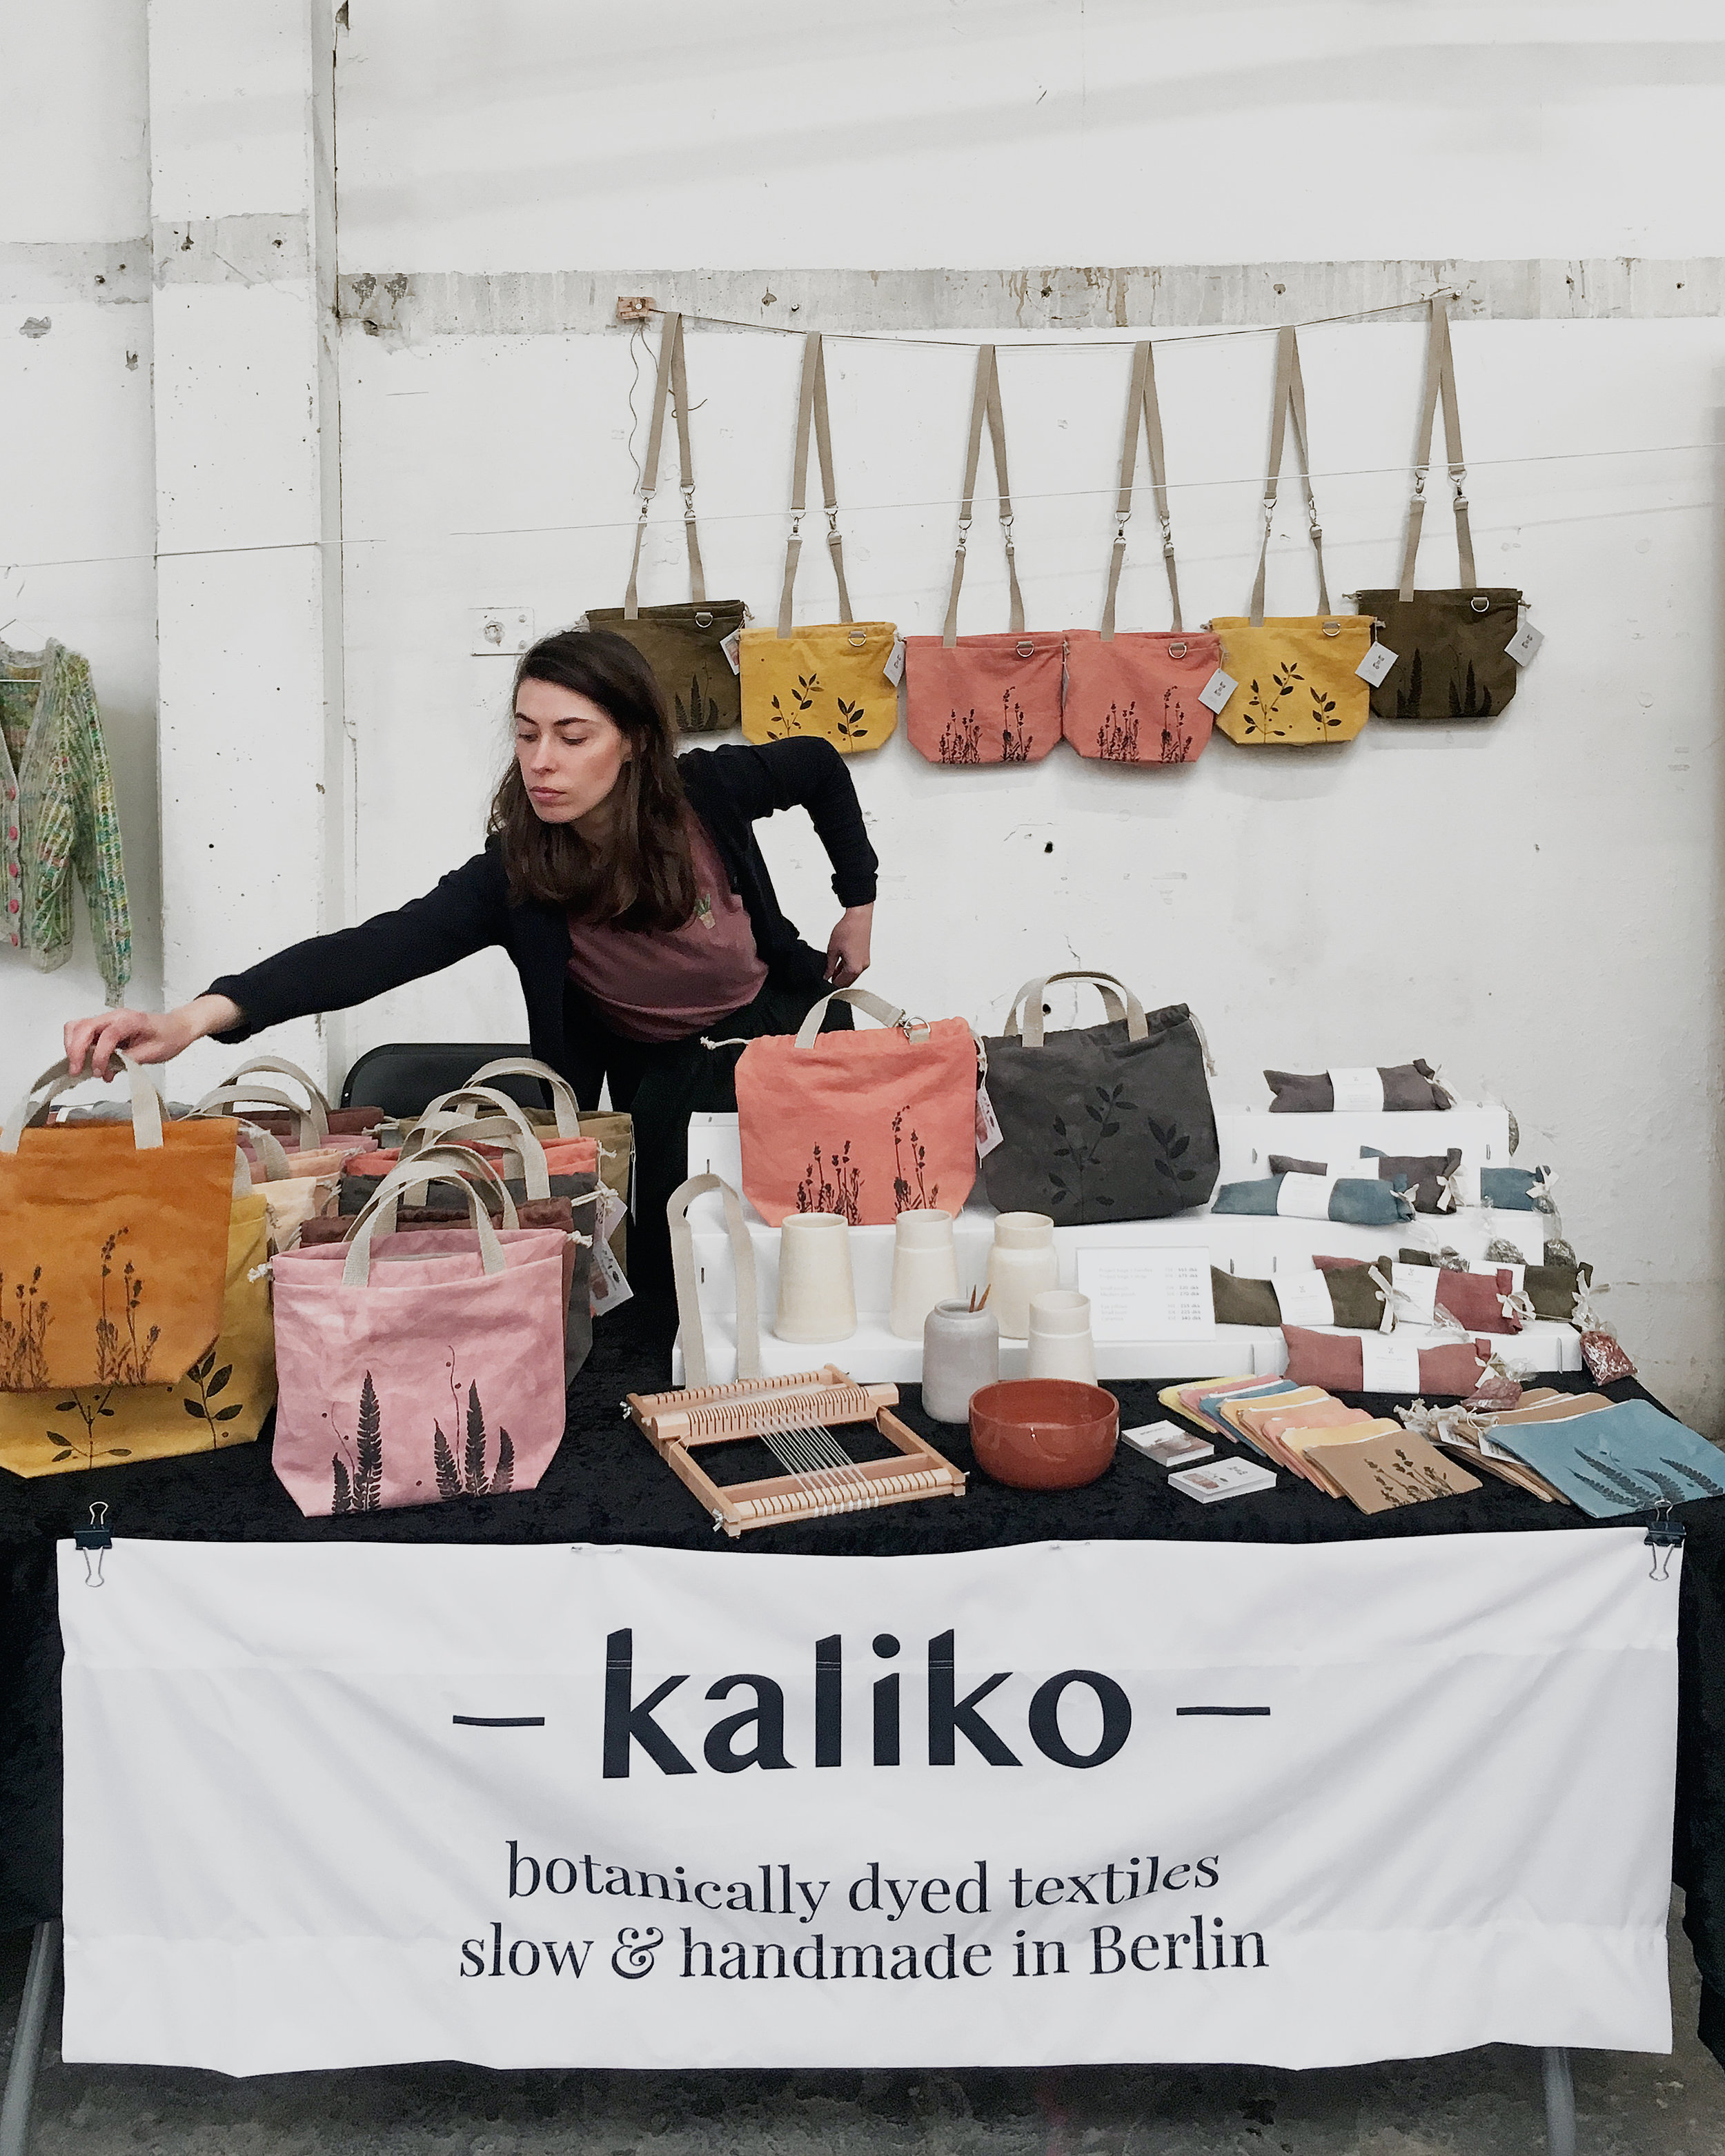 Kaliko botanical textiles at a craft fair in Roskilde, Denmark #handmade #business #craftfair #textiles